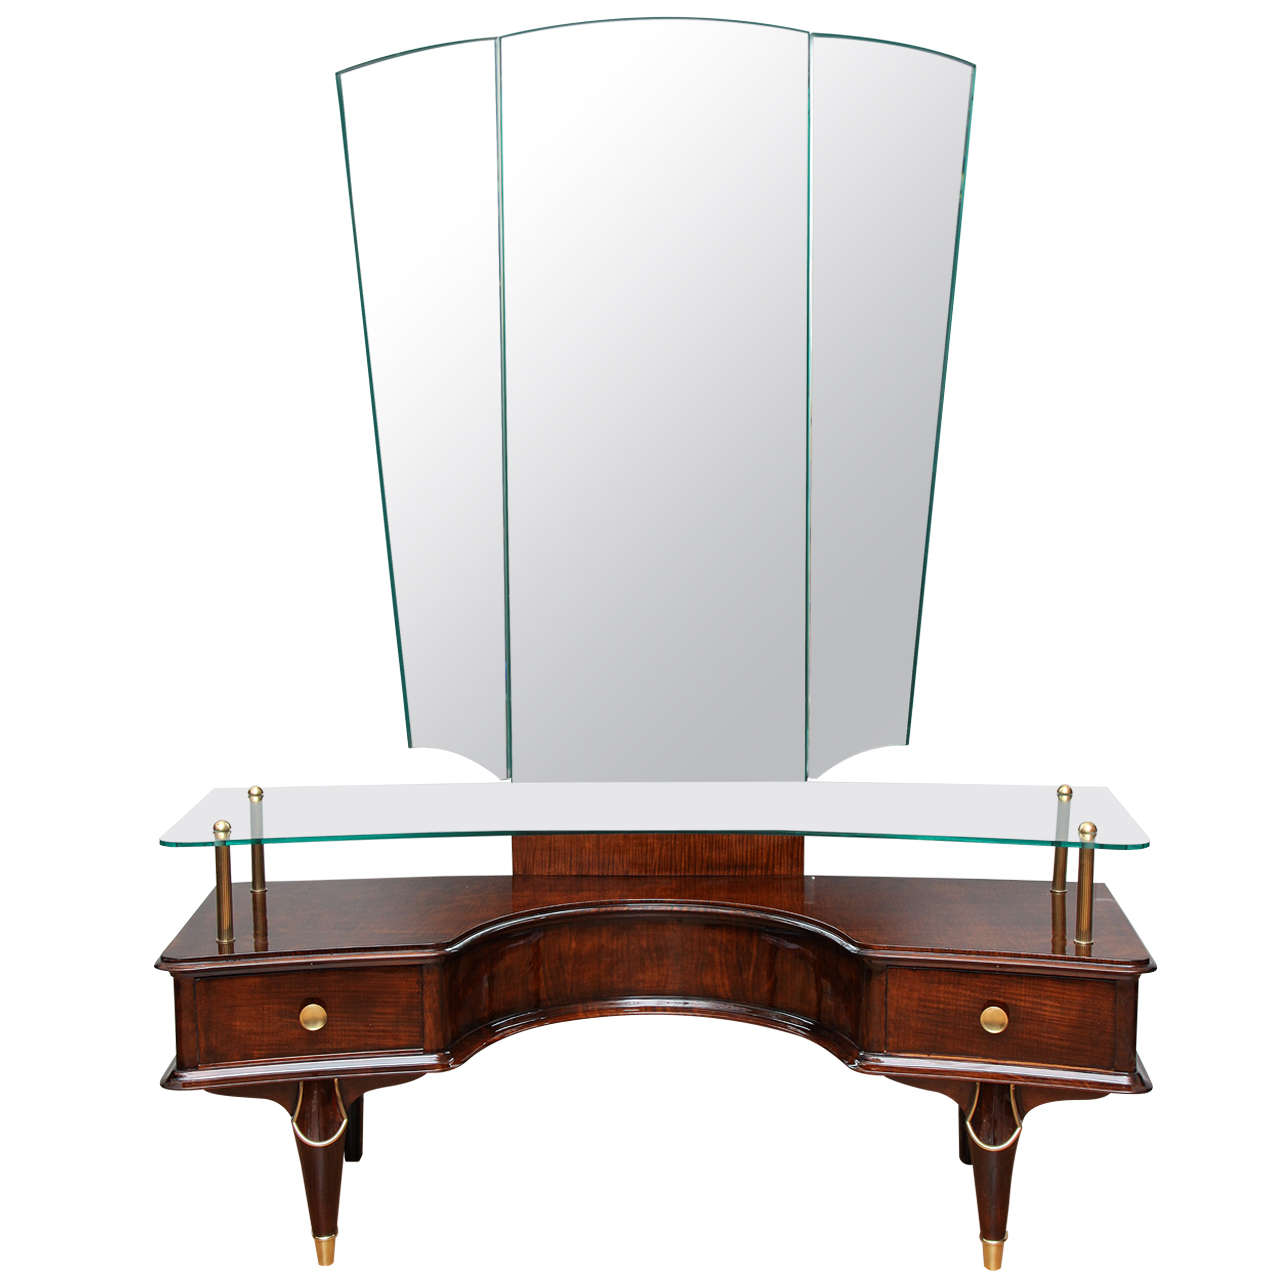 Dressing Coiffeuse Fabulous Art Deco Coiffeuse Dressing Table At 1stdibs